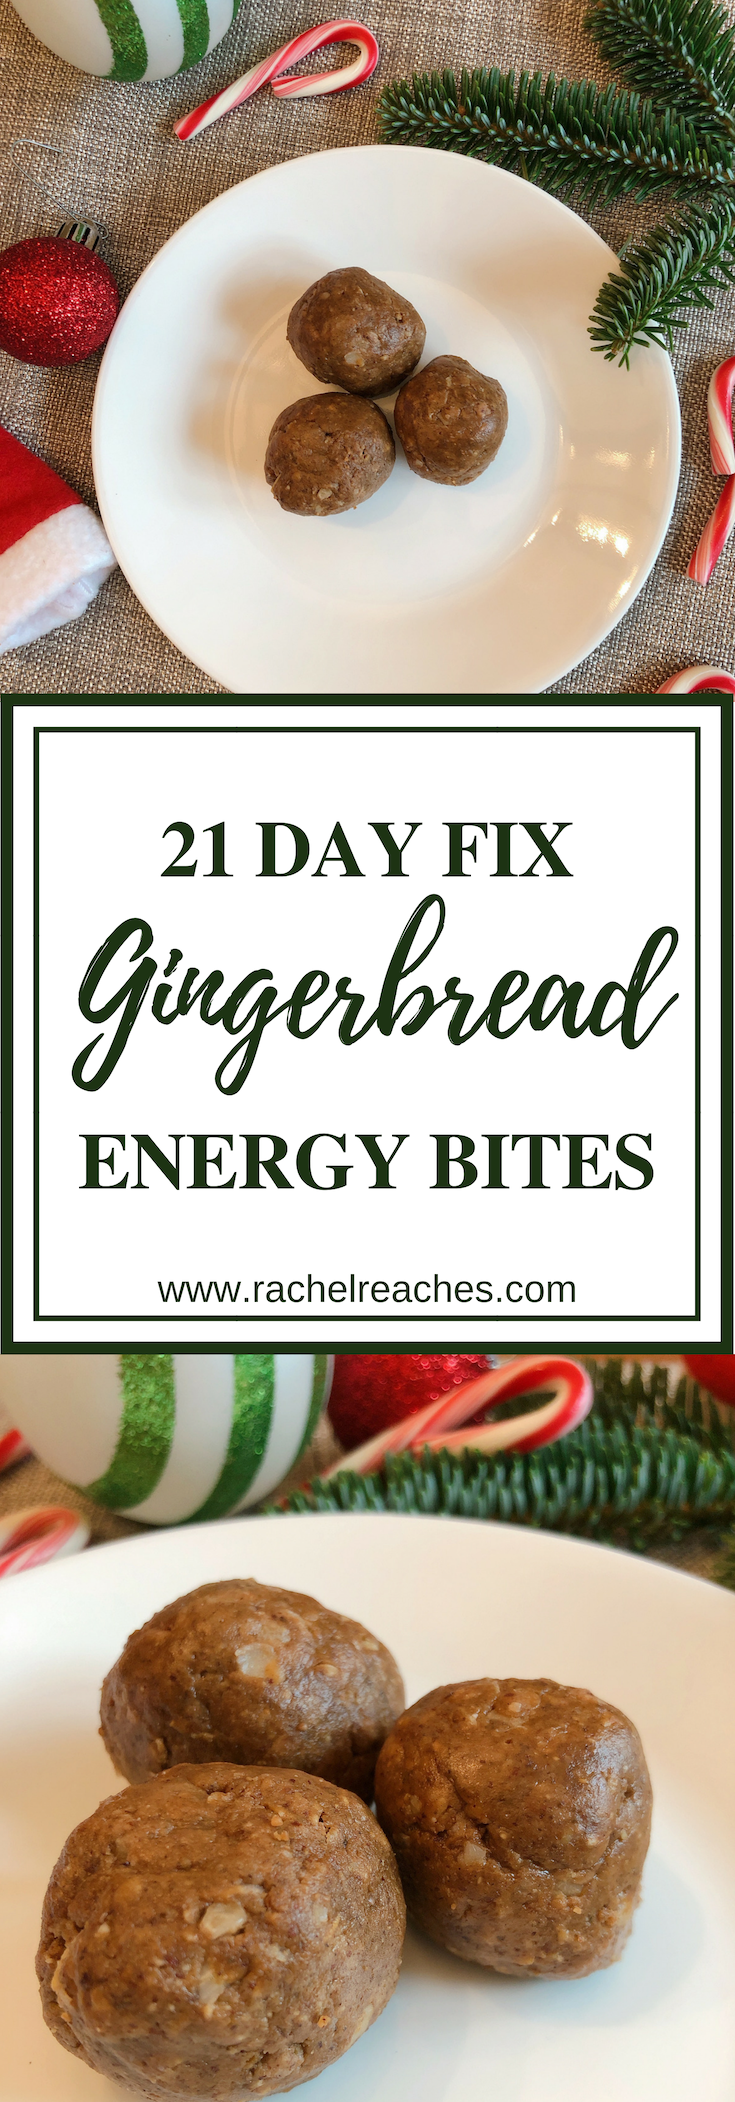 Gingerbread Energy Bites Pin - 21 Day Fix.png